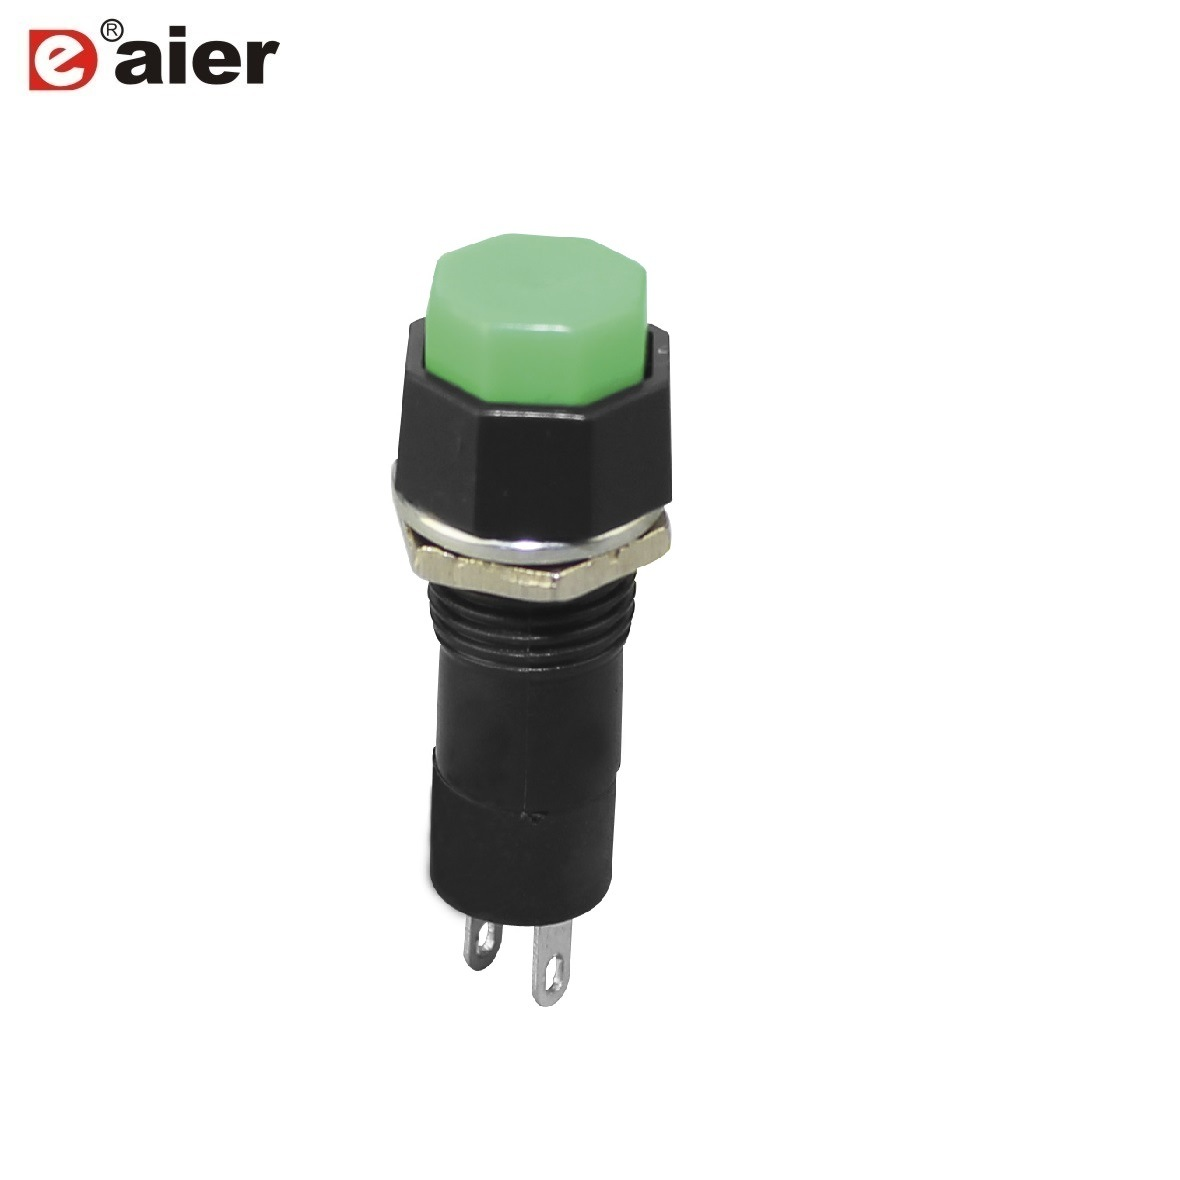 China 1a 250vac Off On Normally Open 12mm Push Button Switch Switches Spst